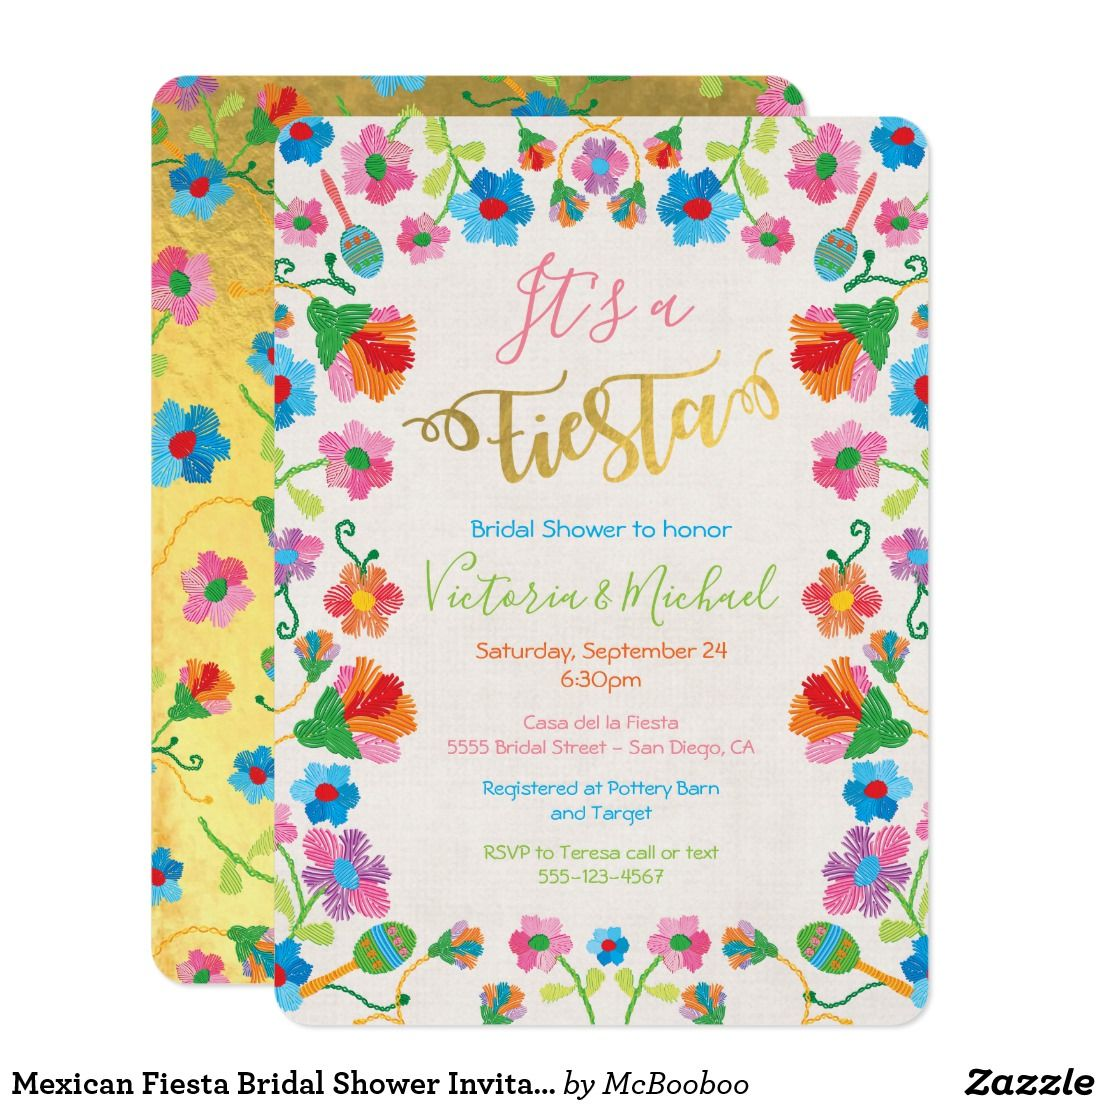 636c694a0334 Mexican Fiesta Bridal Shower Invitations It s a Fiesta with this pretty and  colorful Mexican Fiesta Bridal